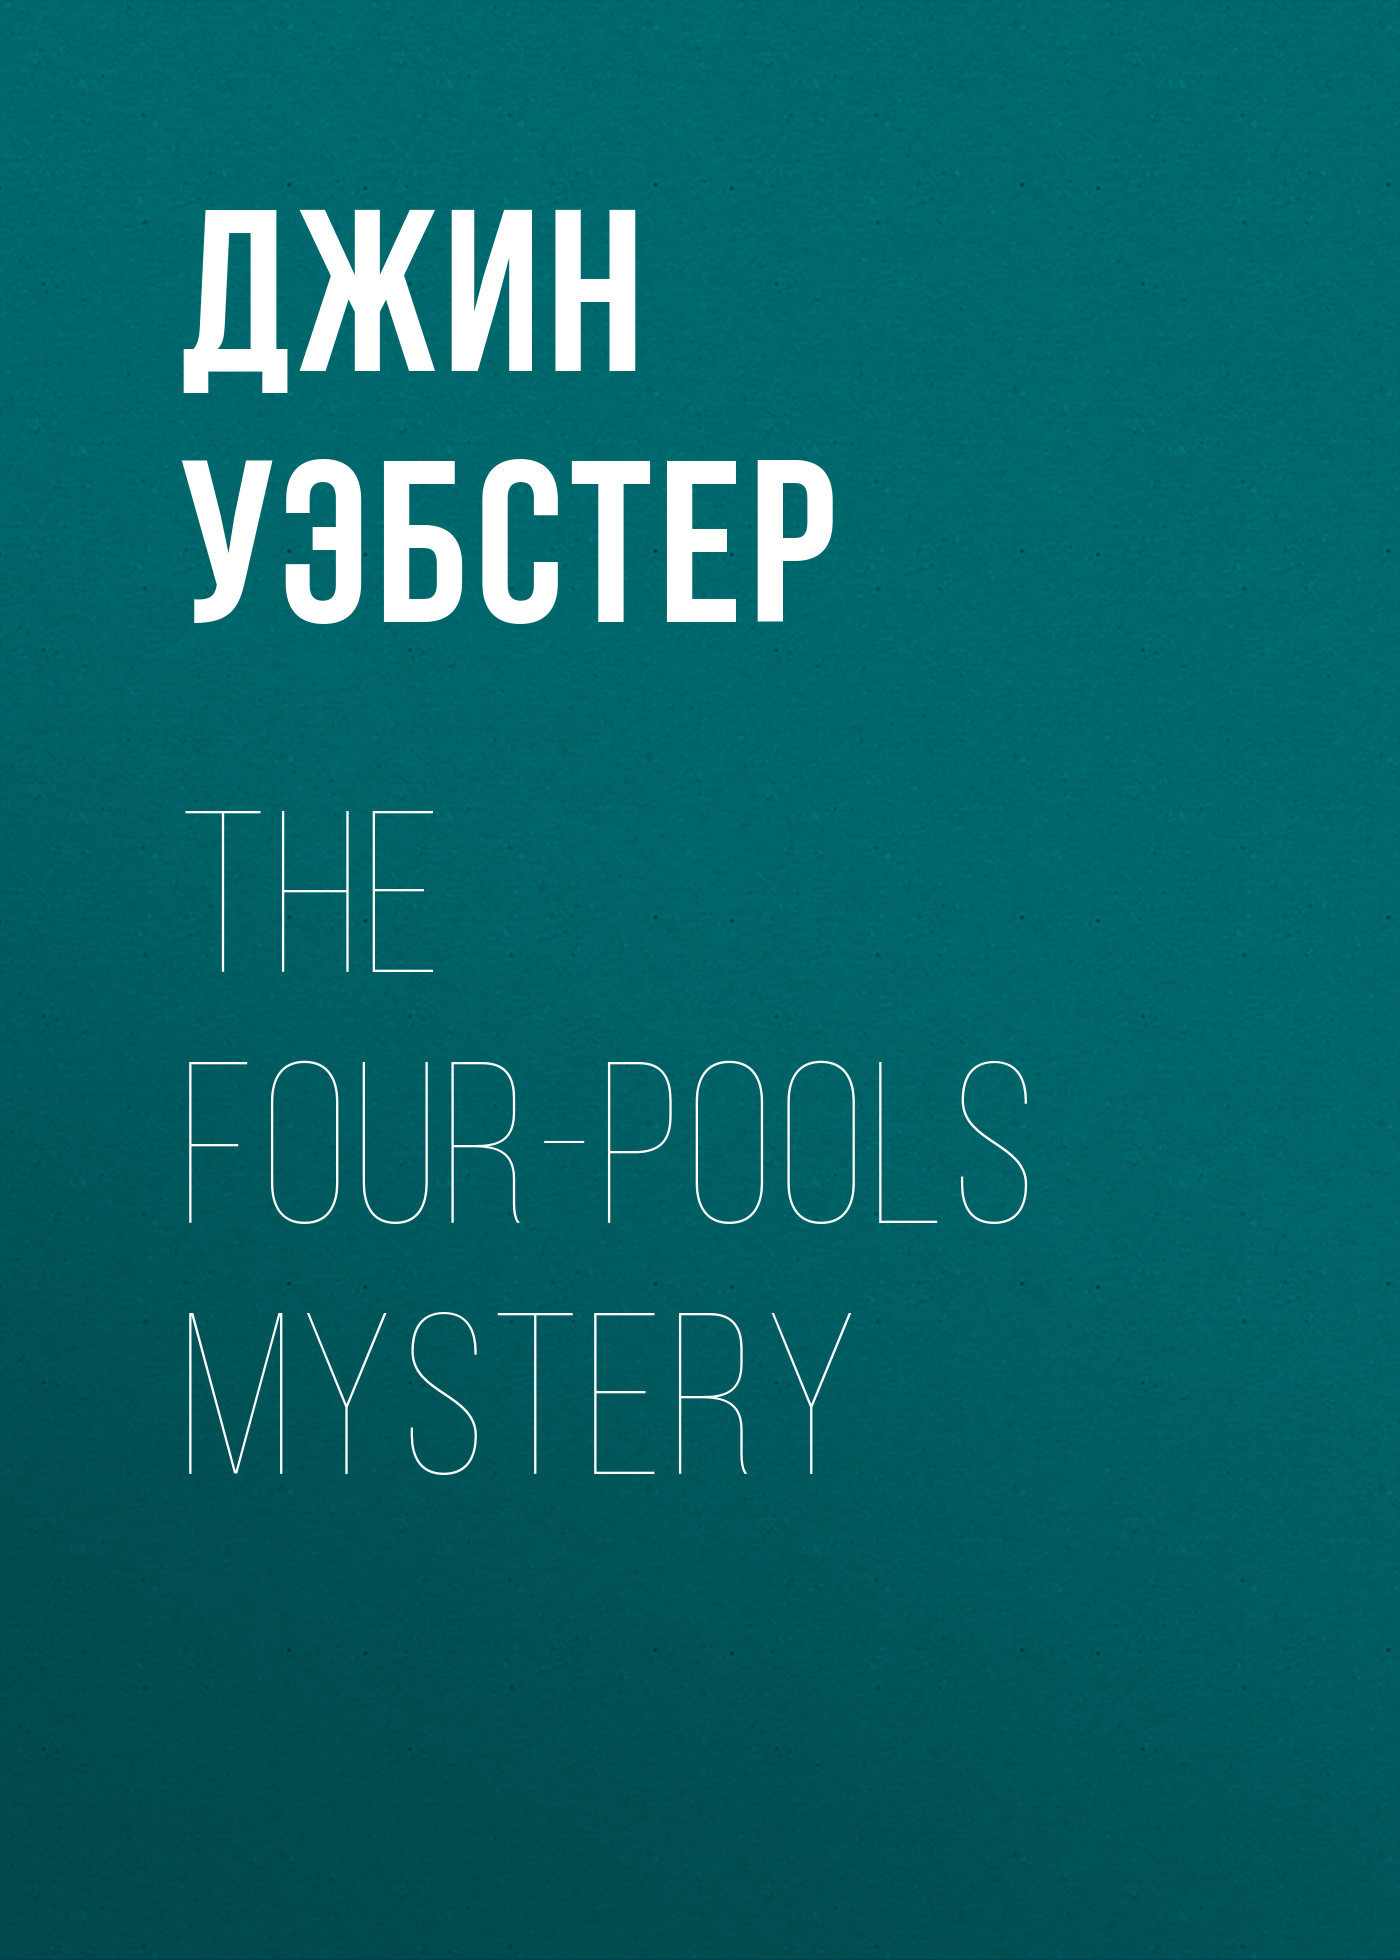 Джин Уэбстер The Four-Pools Mystery уэбстер джин патти в колледже повесть